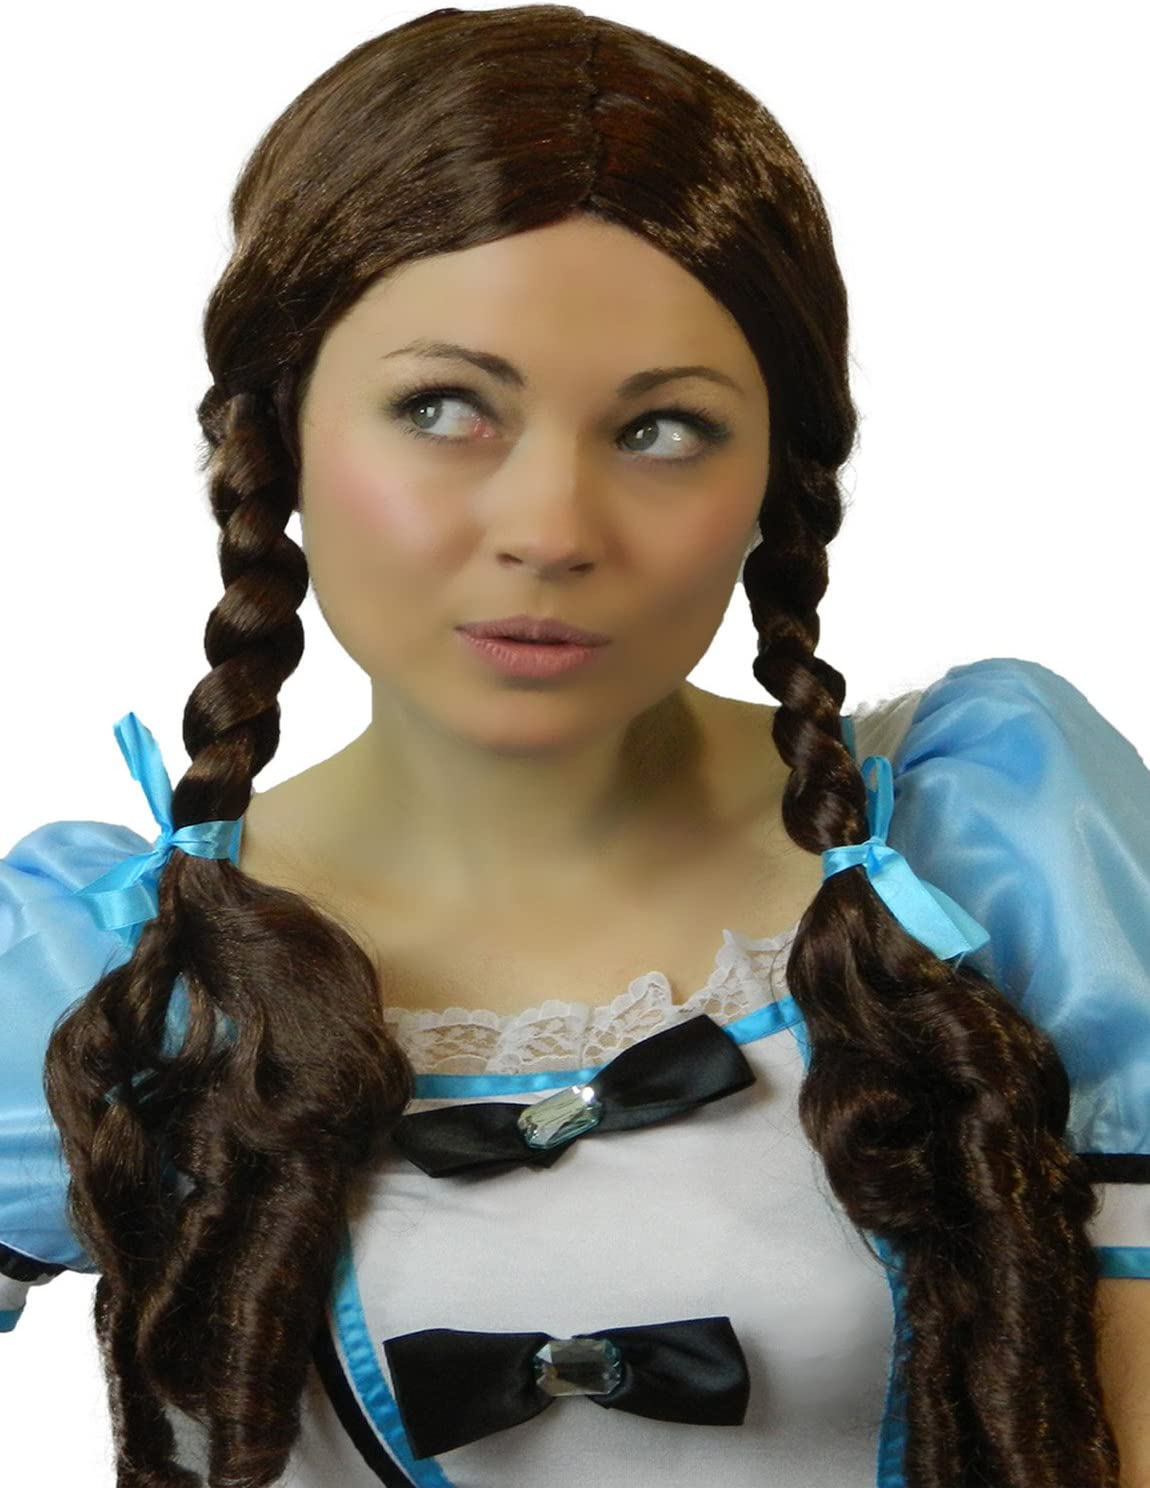 New Brown Plaited Country Girl Wig With Red Bows Dorothy Wizard Of Oz Ladies